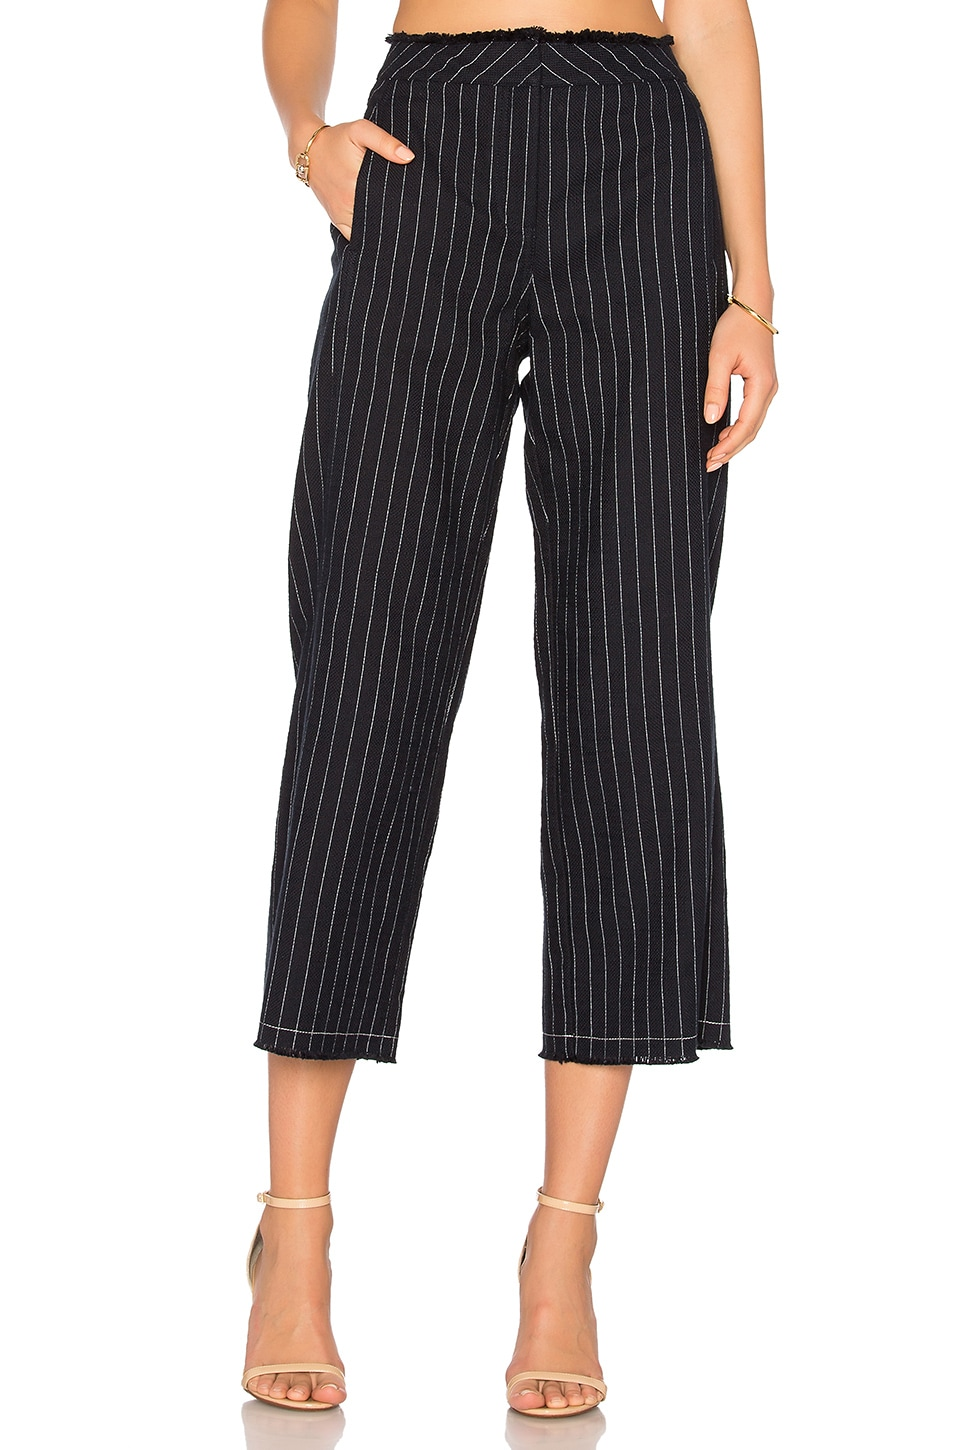 T by Alexander Wang Edge Wide Leg Pant in Navy & White Stripe